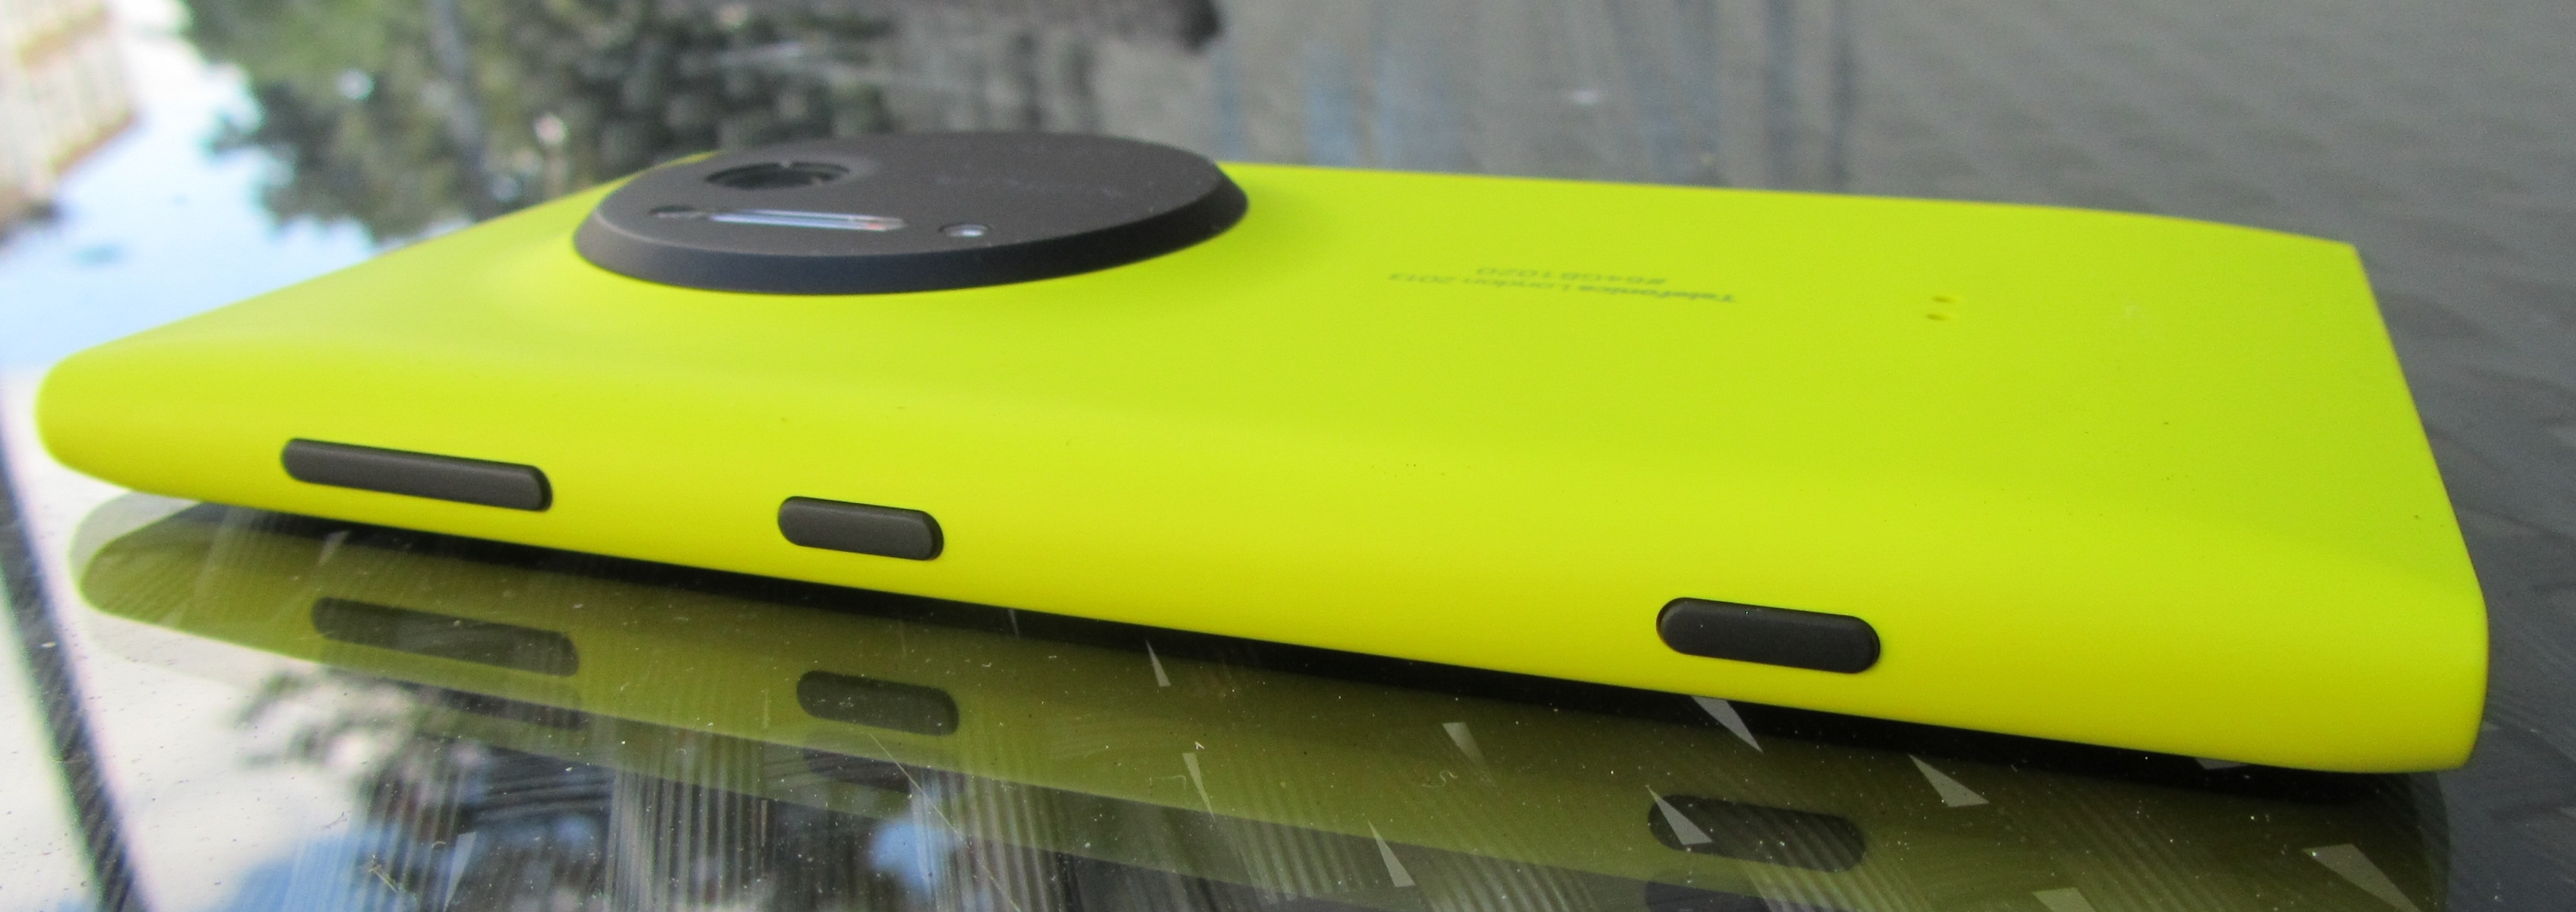 Nokia lumia 1020 review big camera big price big win - Nokia Lumia 1020 Review Big Camera Big Price Big Win 20